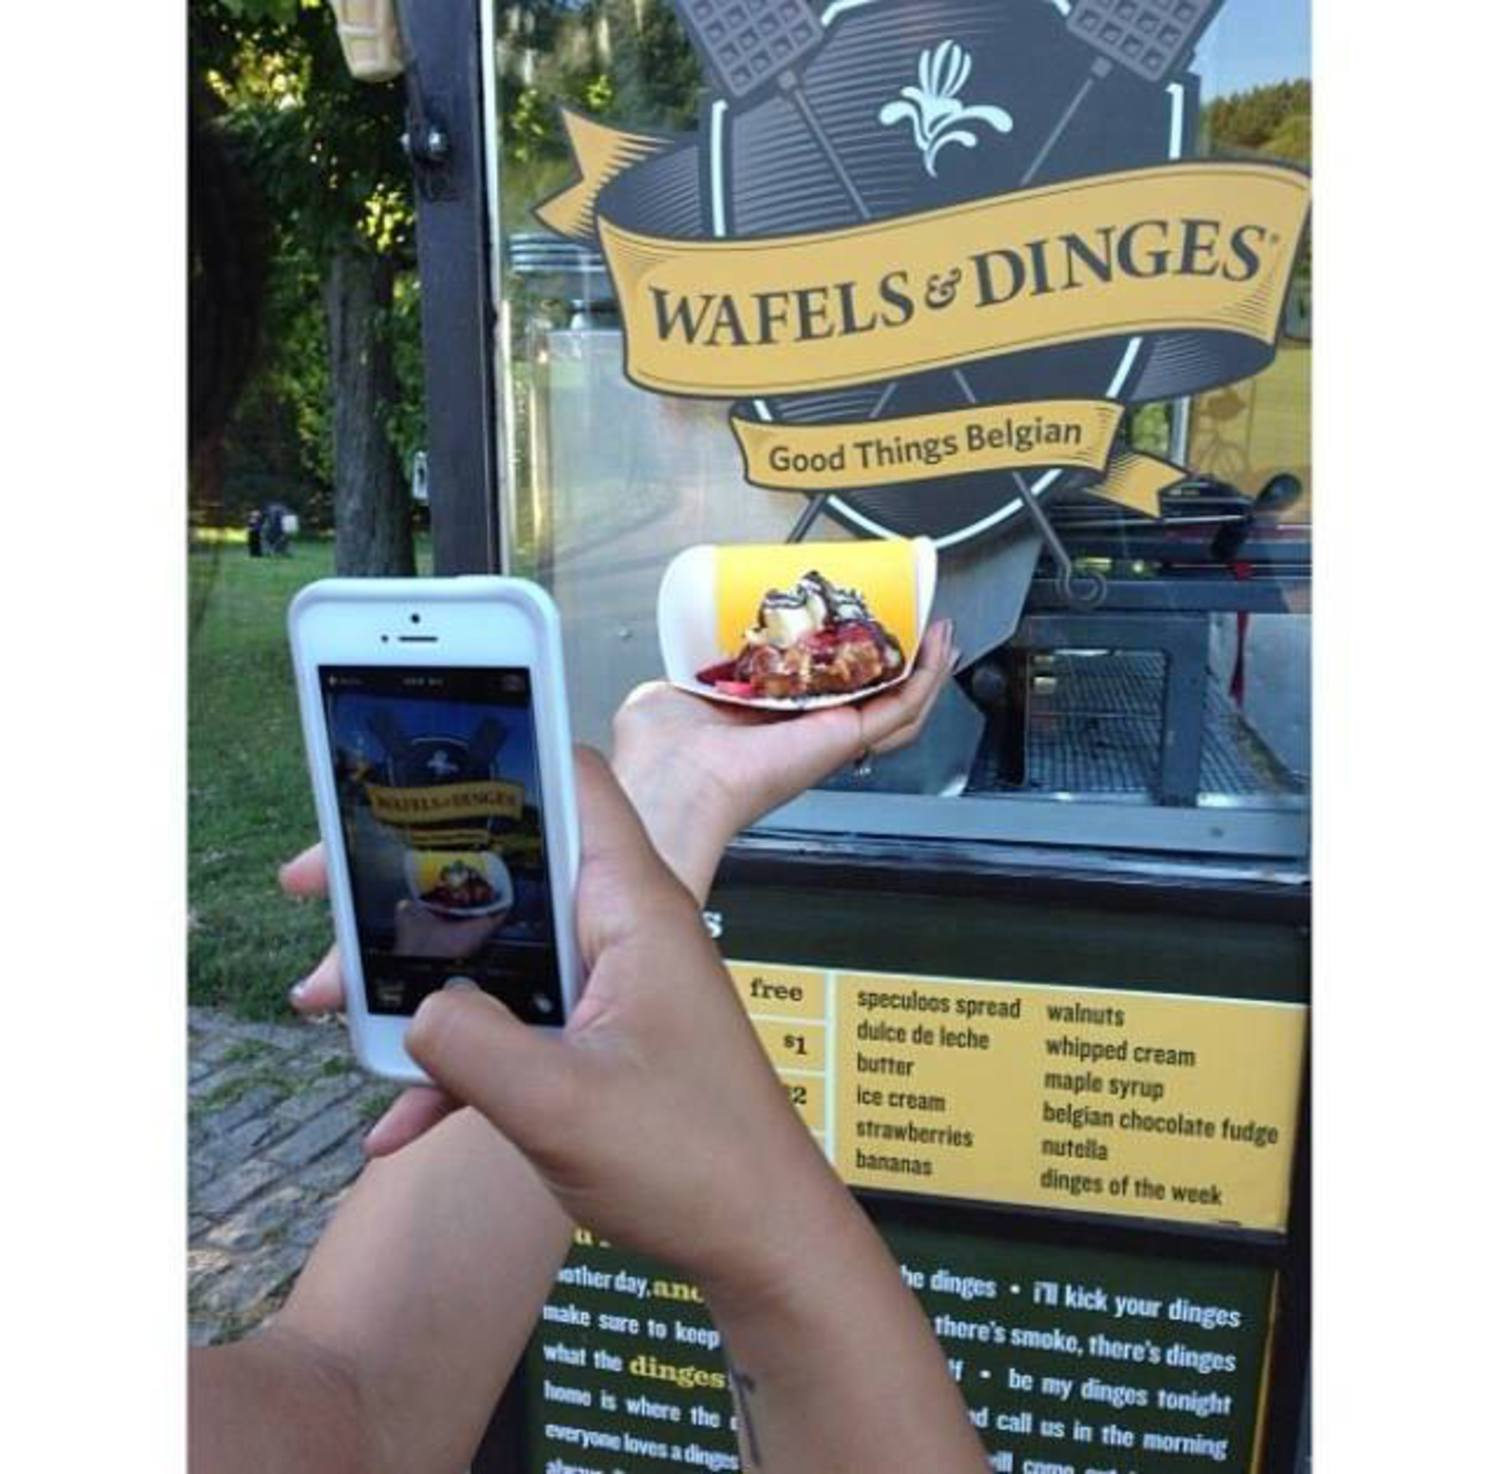 Free Waffles at Wafels & Dinges for International Waffle Day